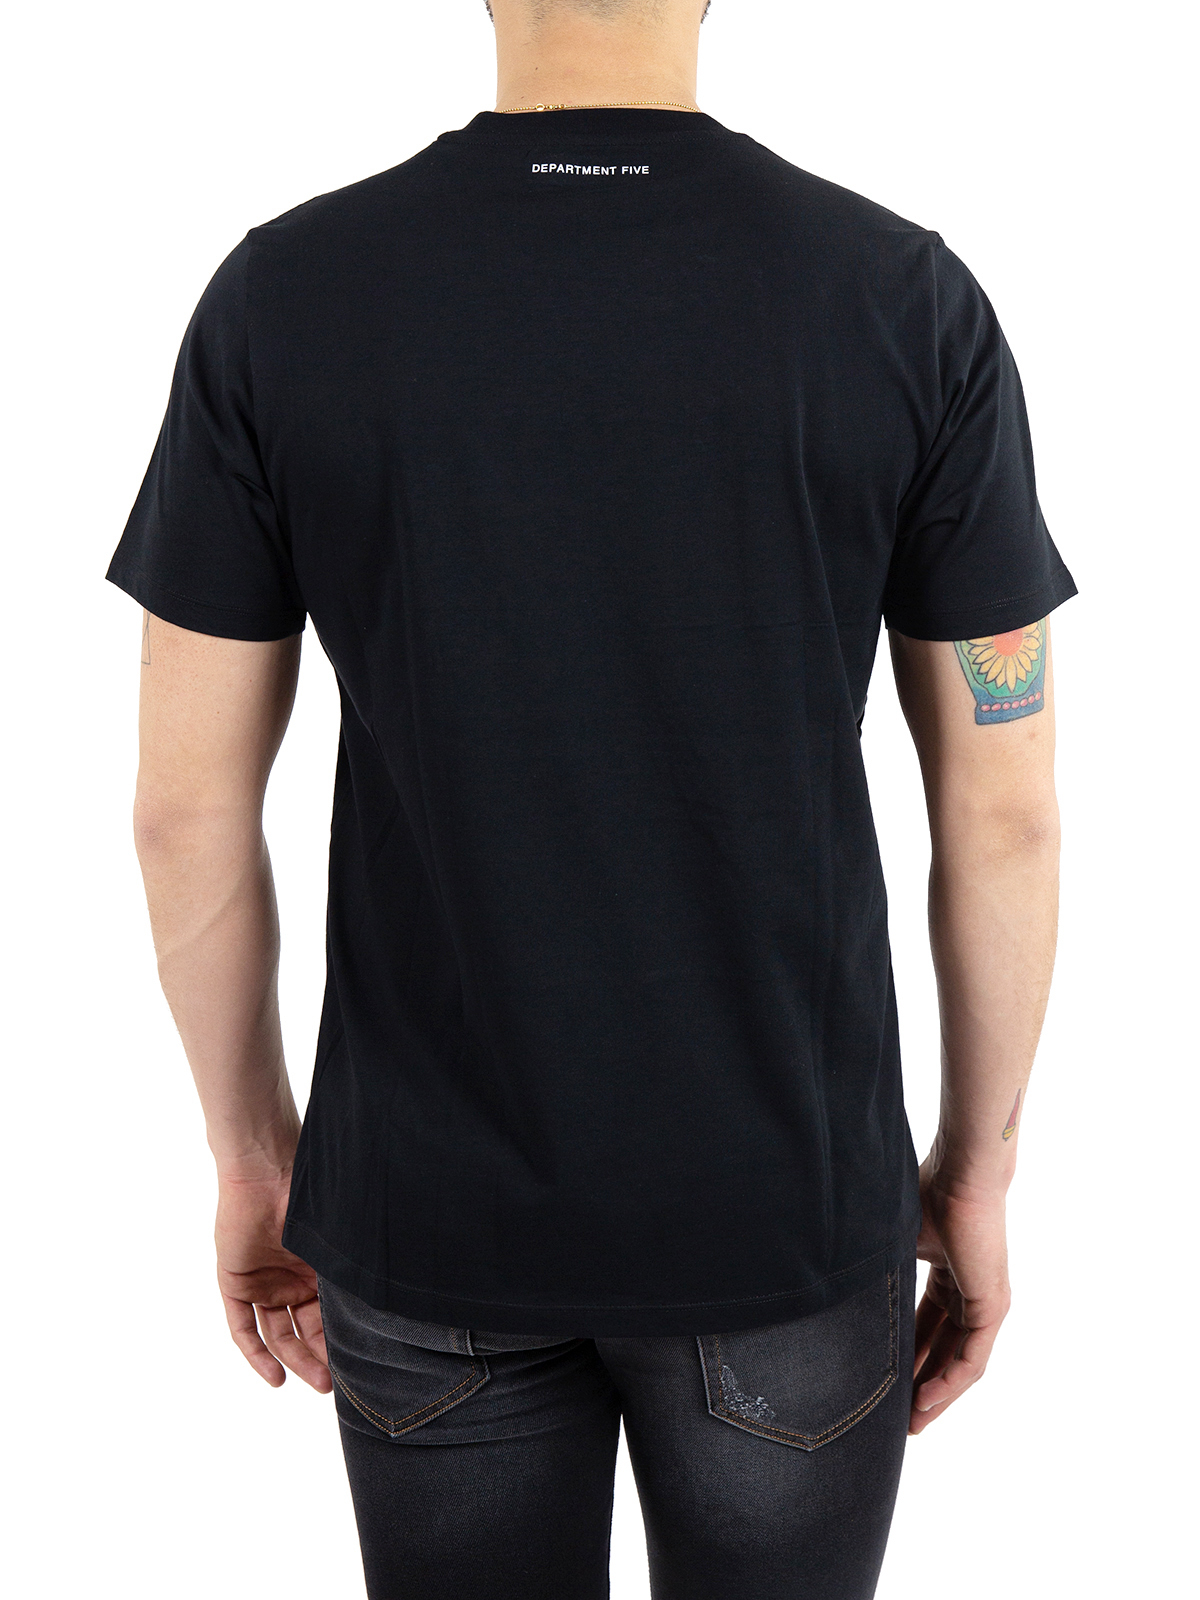 Department five T-shirt U00J02 J0001